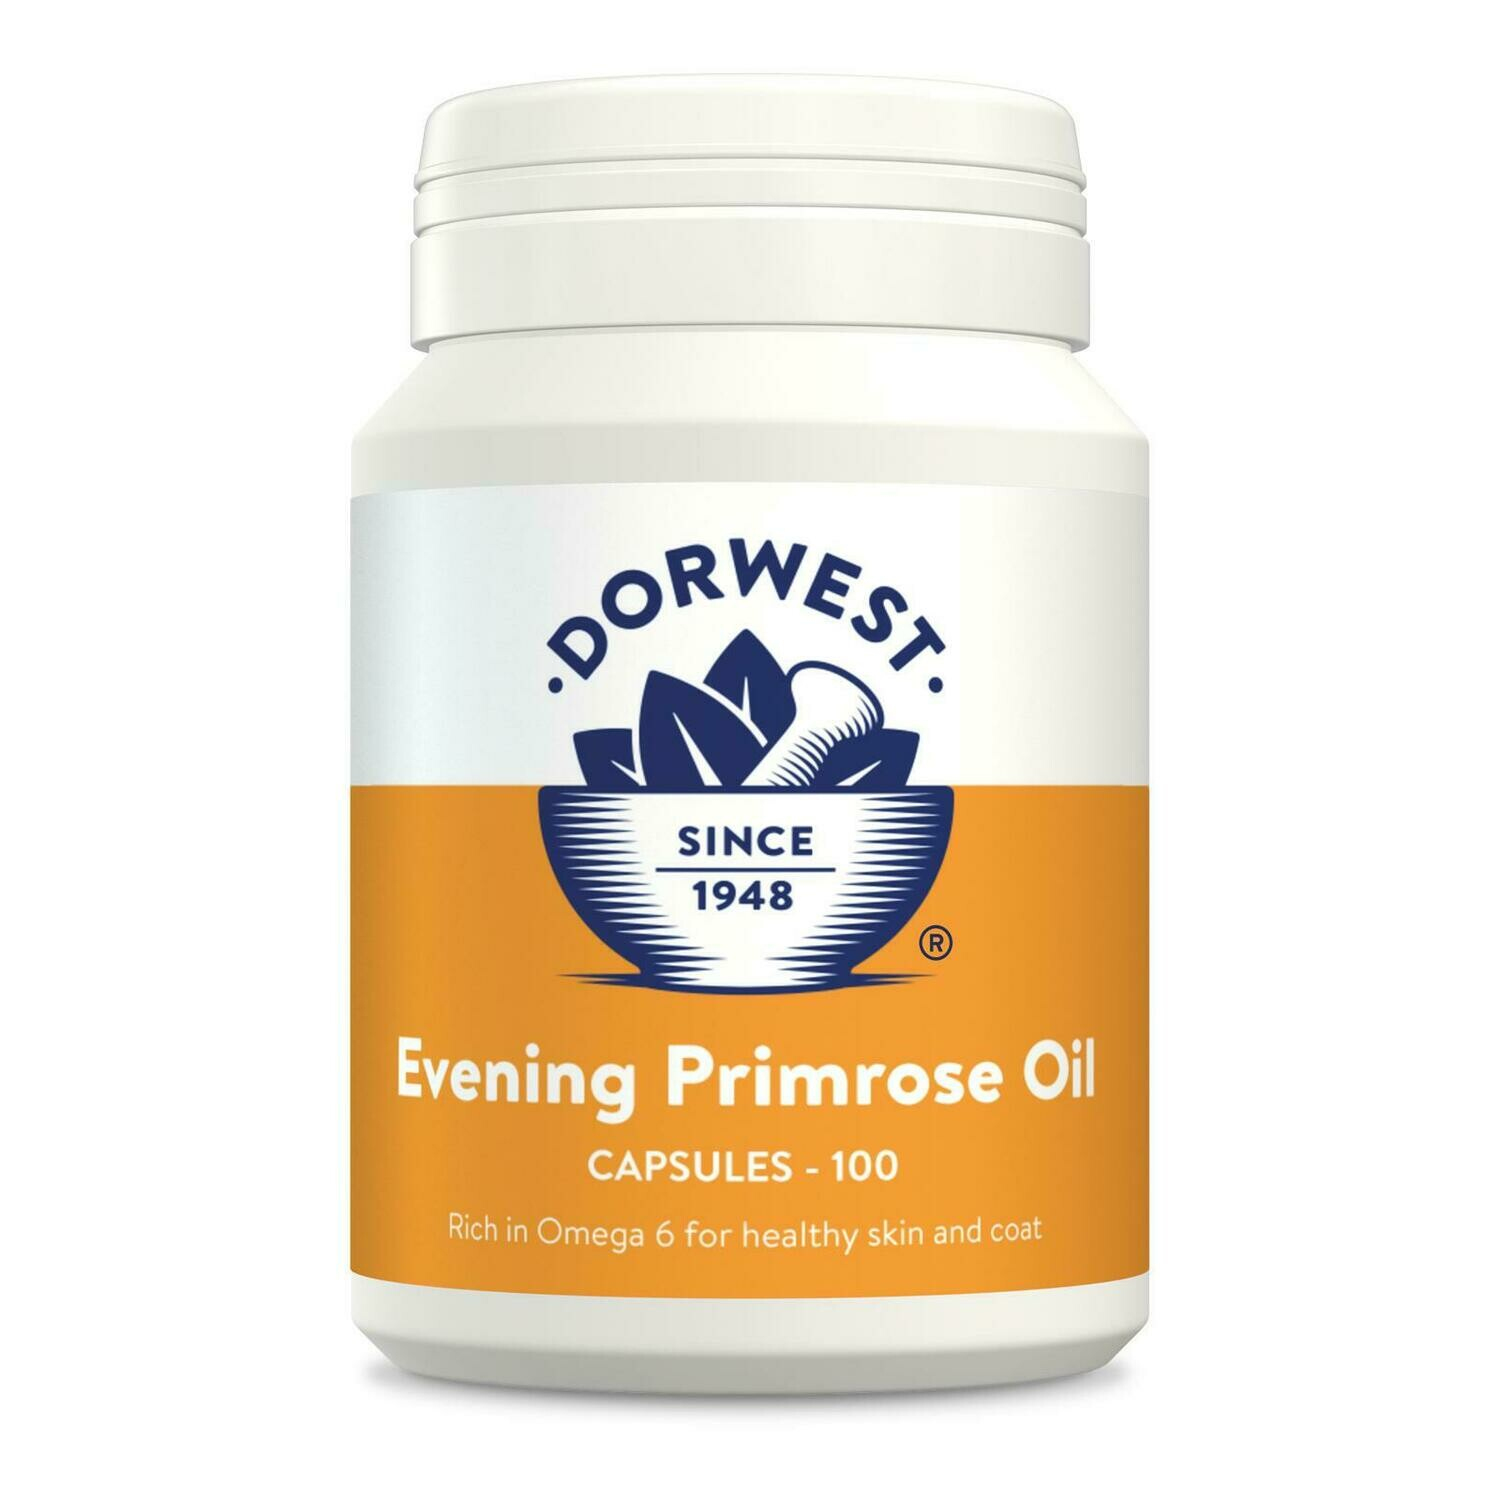 Dorwest Herbs Evening Primrose Oil Capsules for Cats and Dogs (100)